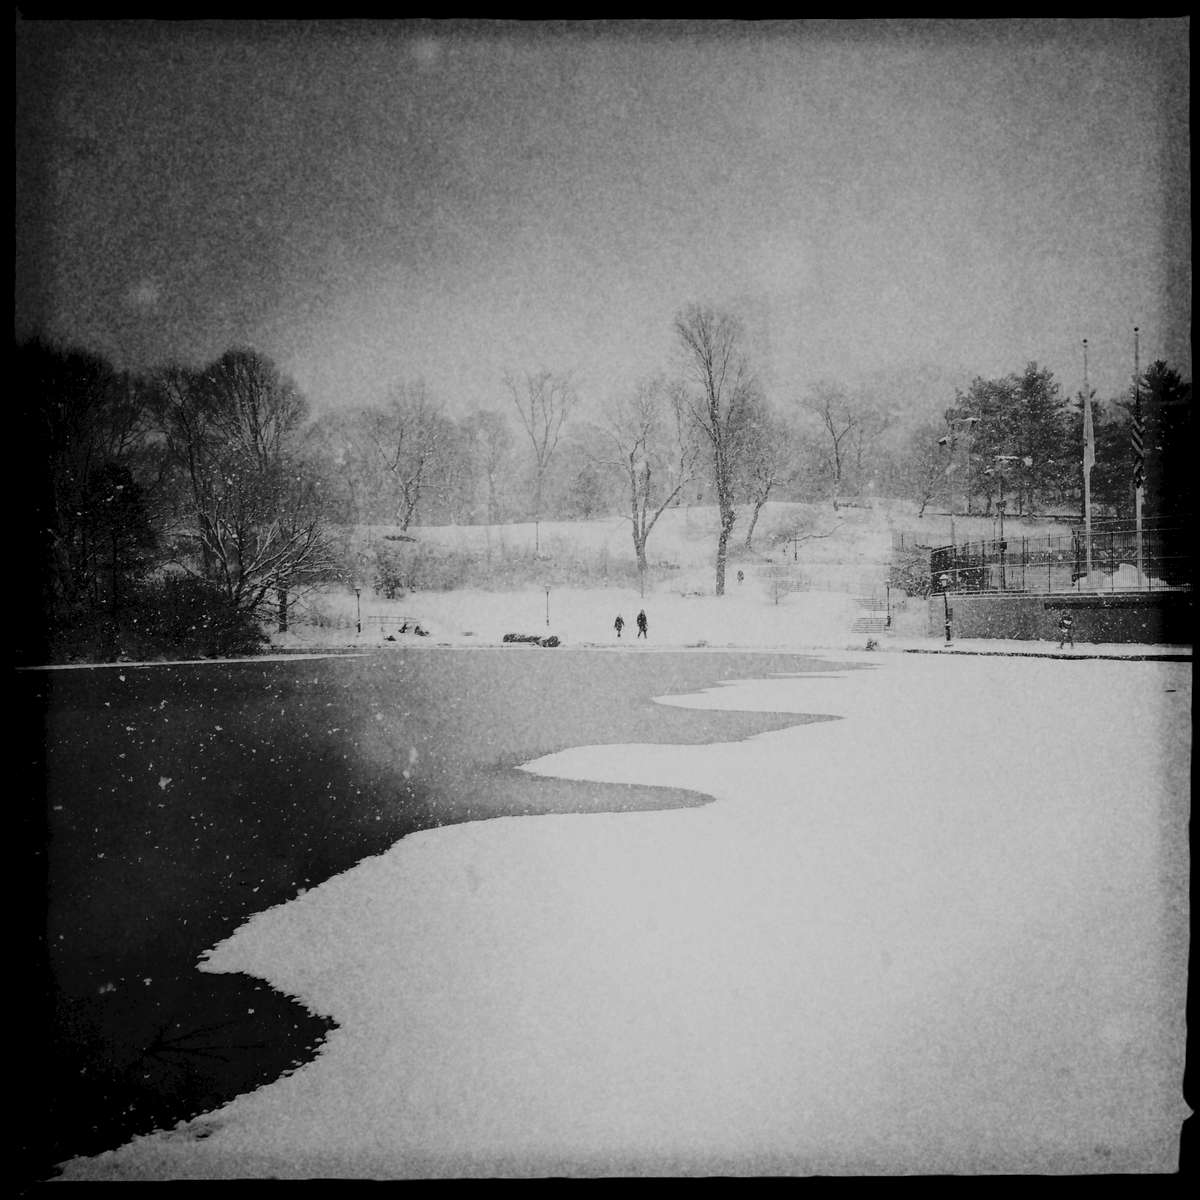 Winter at Harlem Pond in Central Park, Jan. 2015.